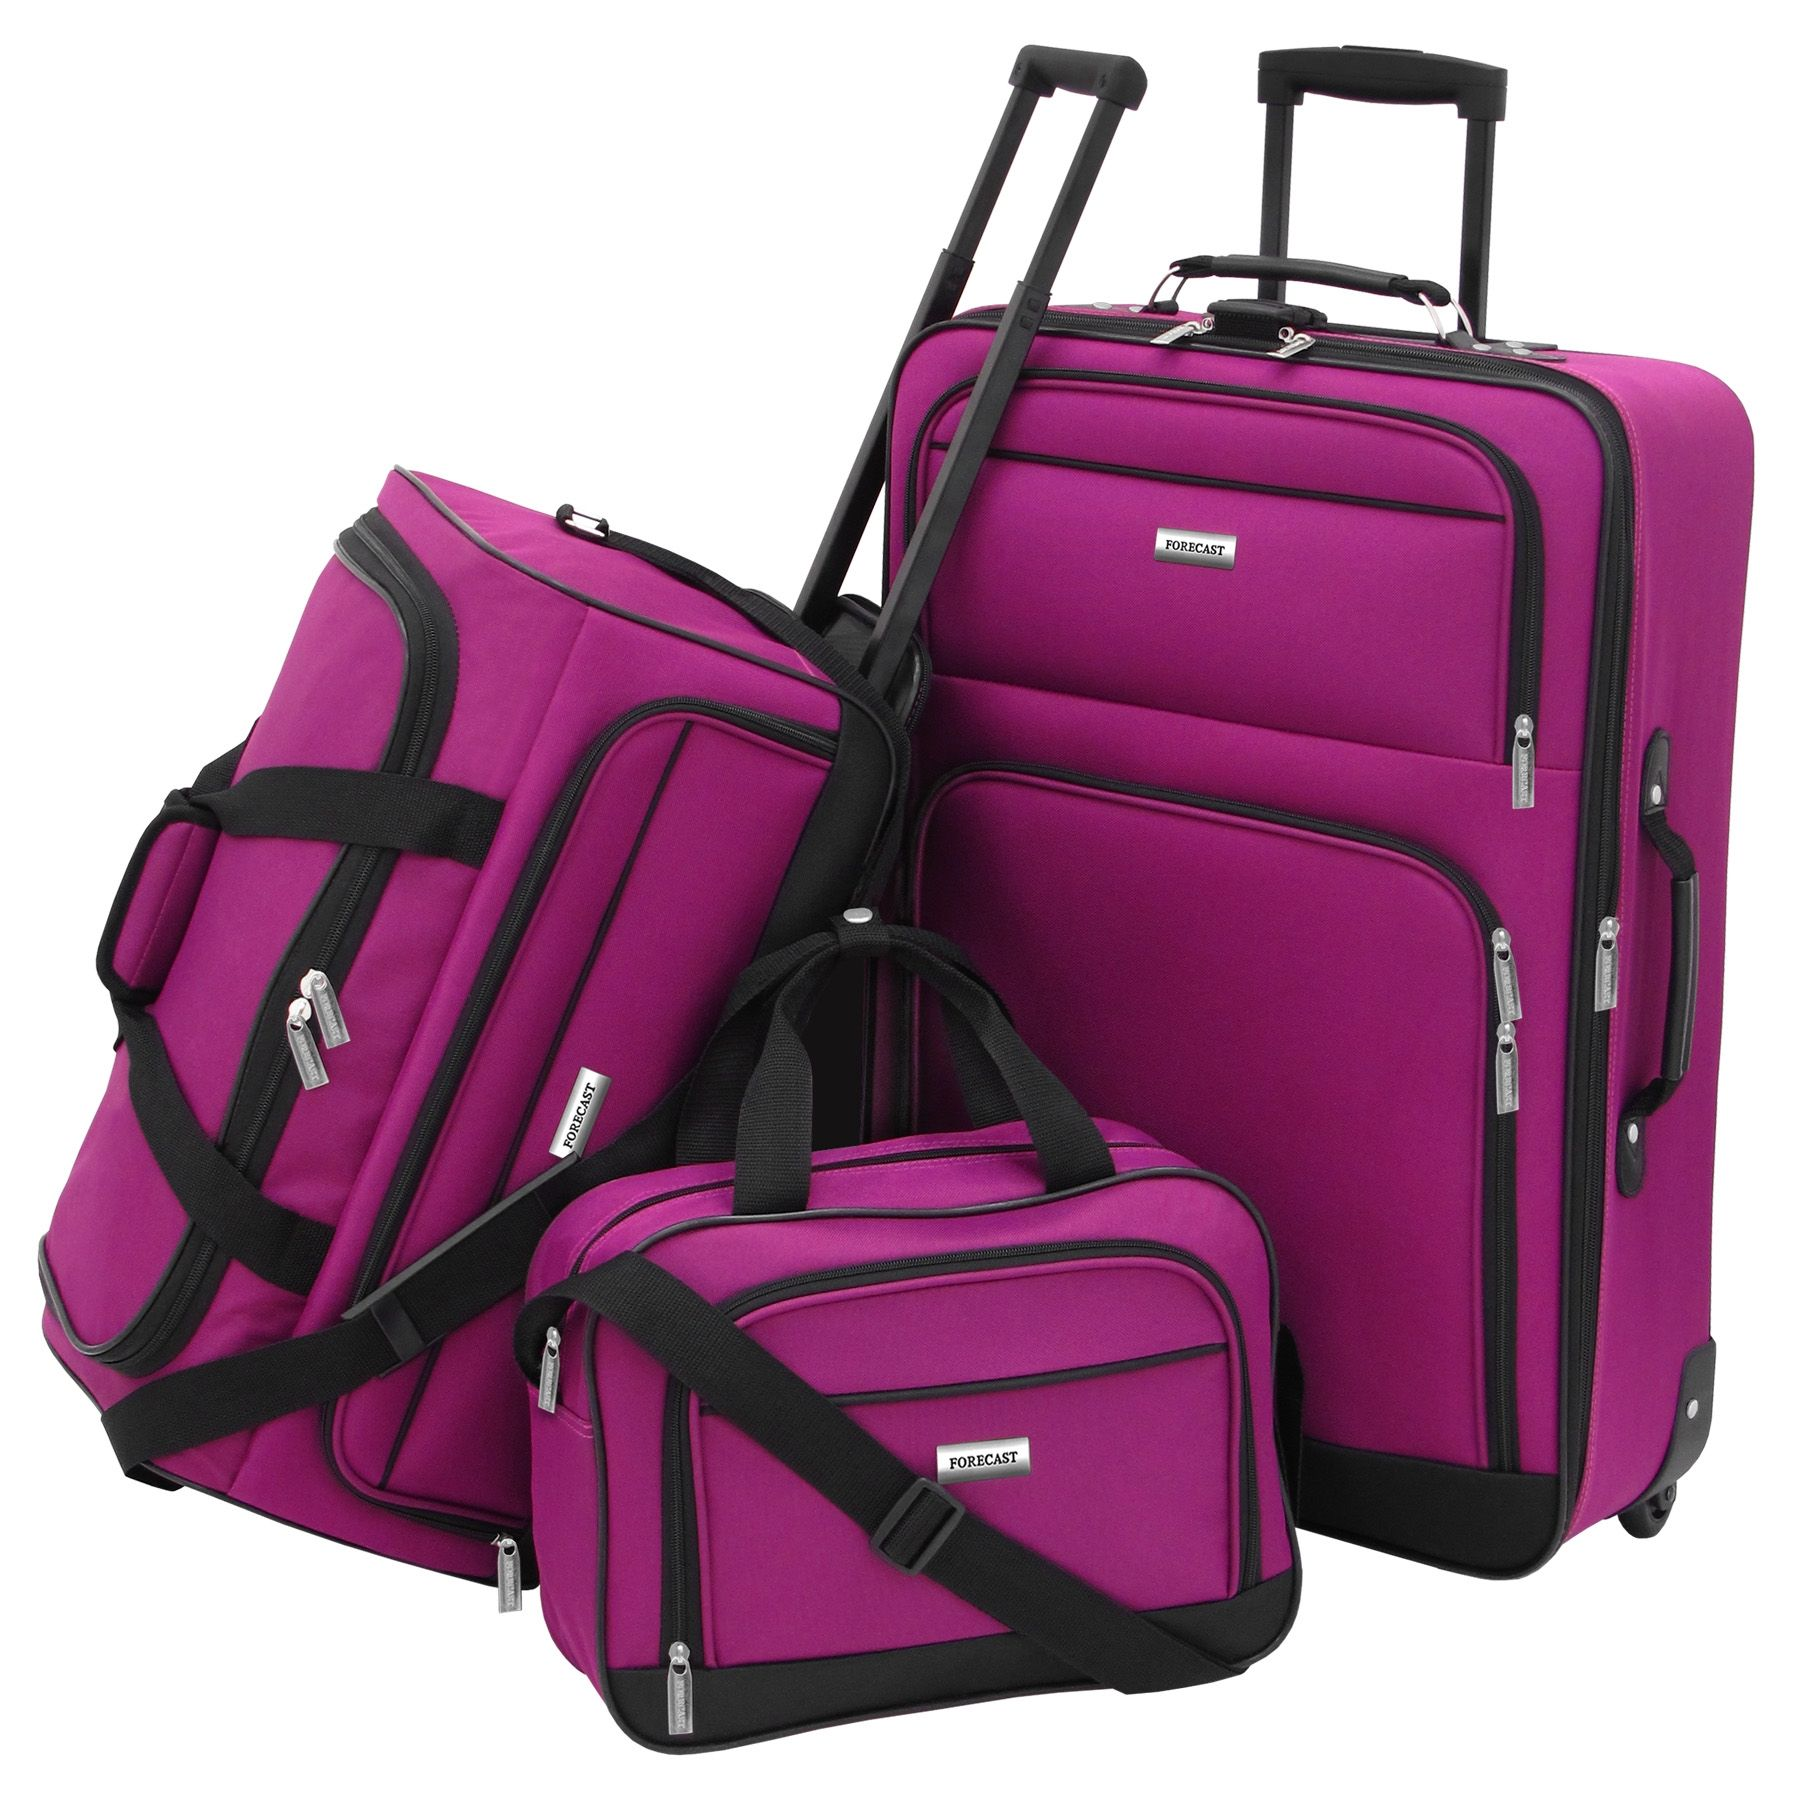 Luggage Sets | Suitcase Sets - Sears | Trendy suitcases ...